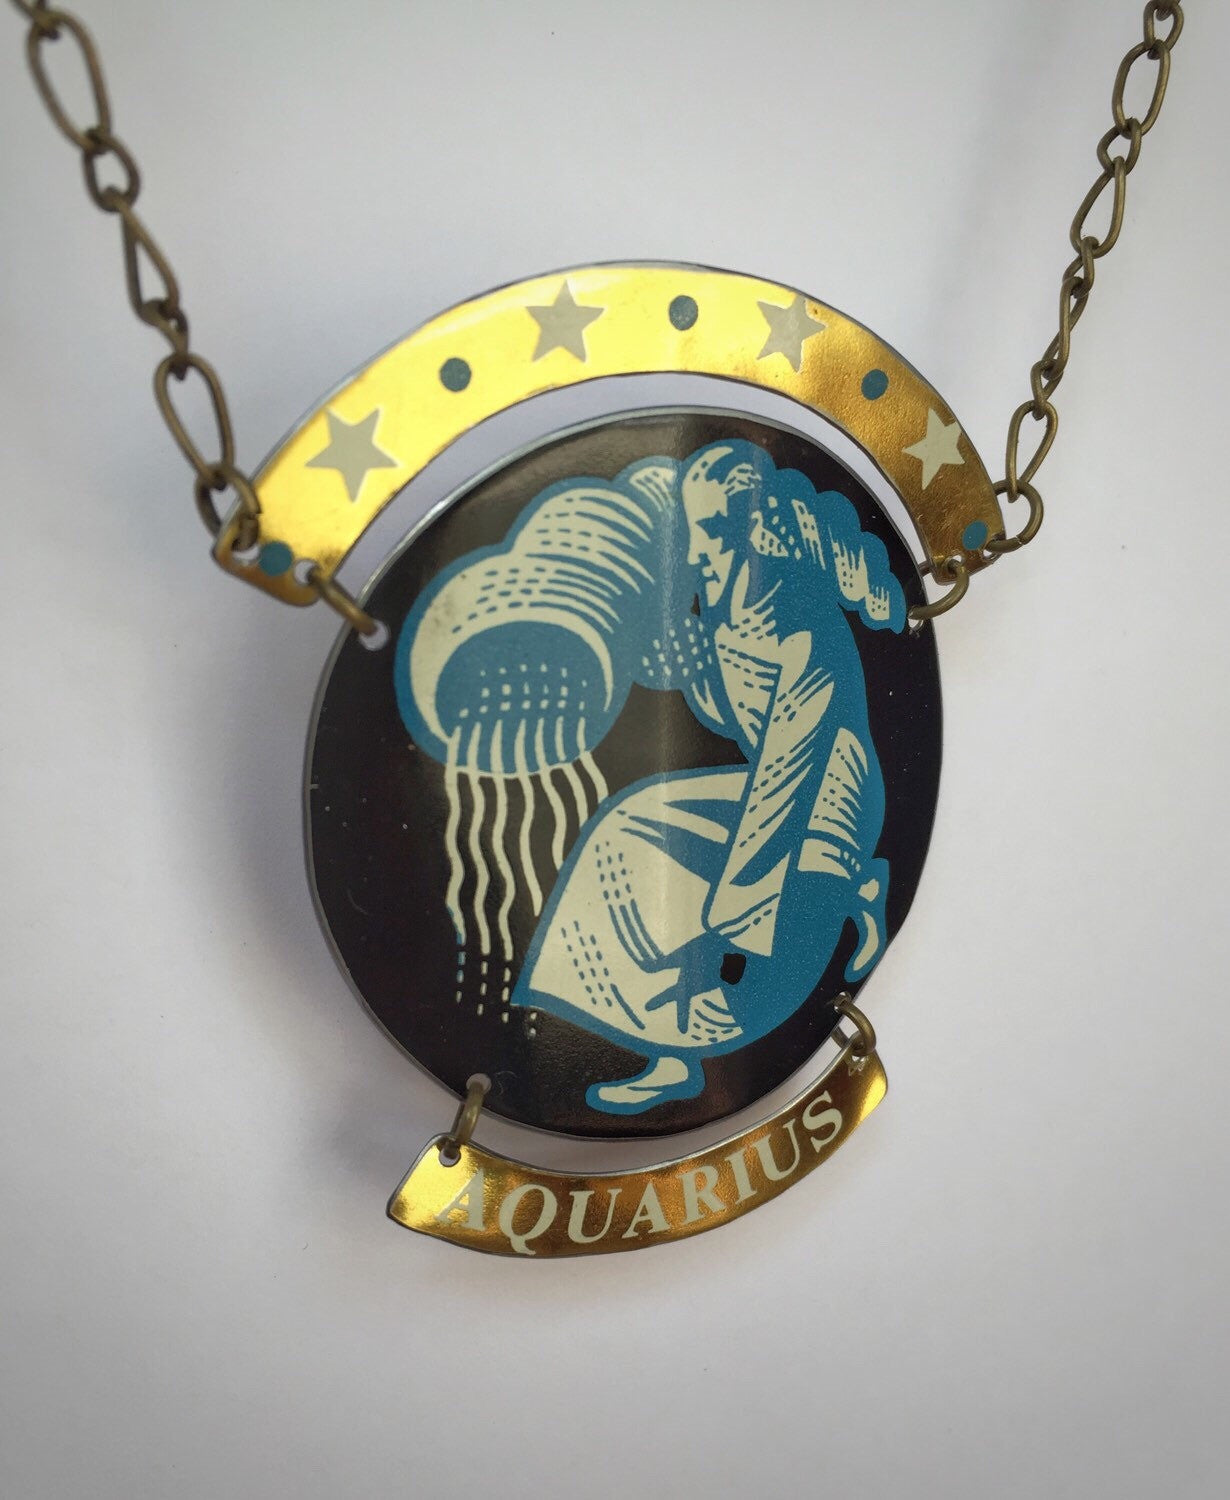 Tin Jewelry - Zodiac Aquarius Necklace - Recycled Vintage Tin angle image